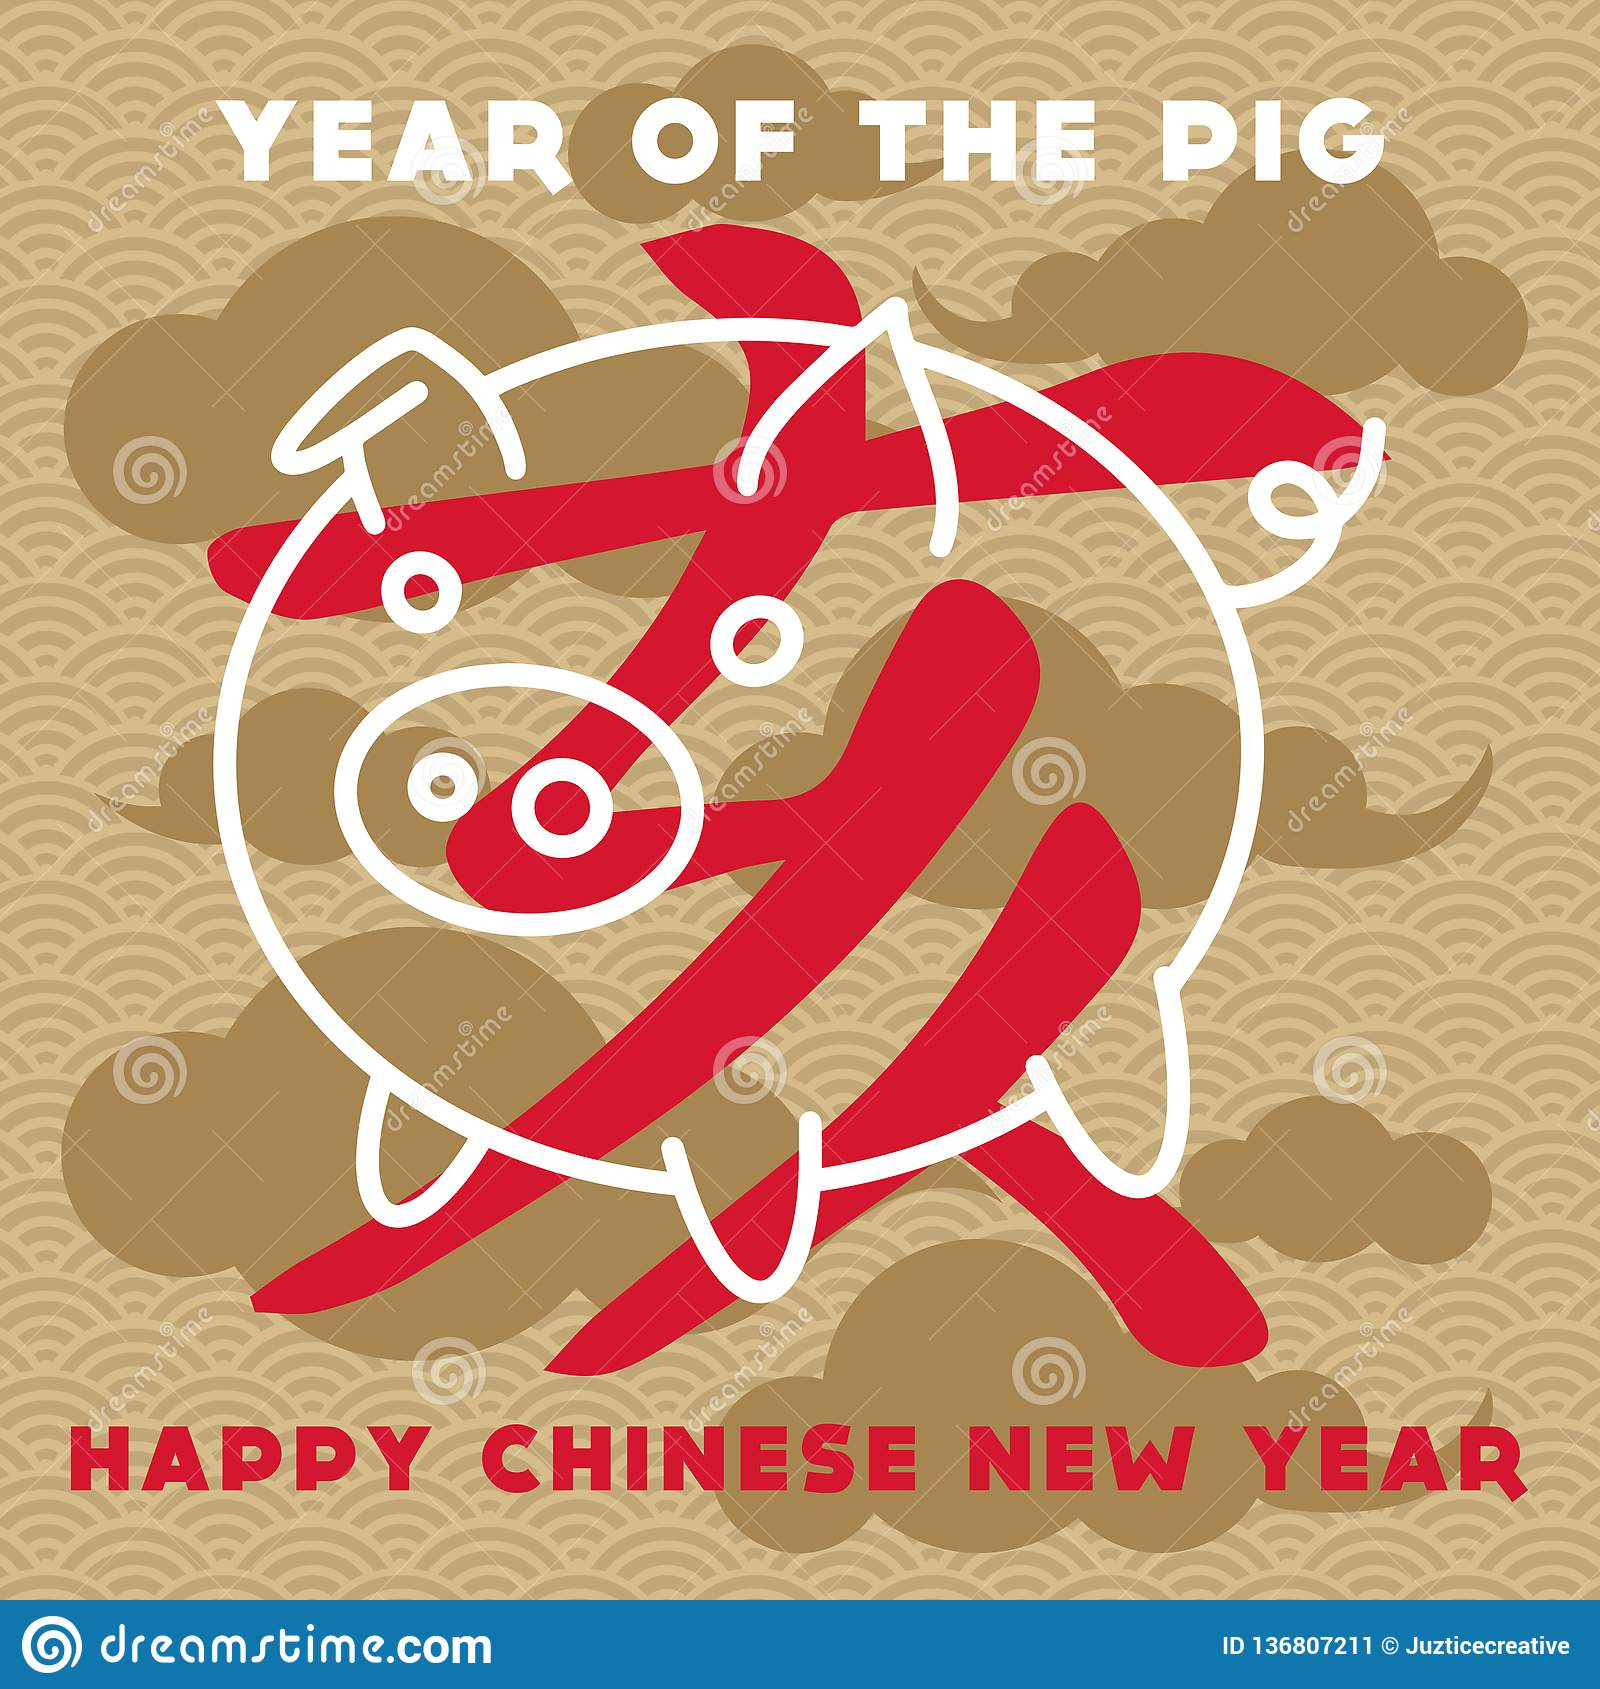 Happy Chinese New Year. Year of the Pig